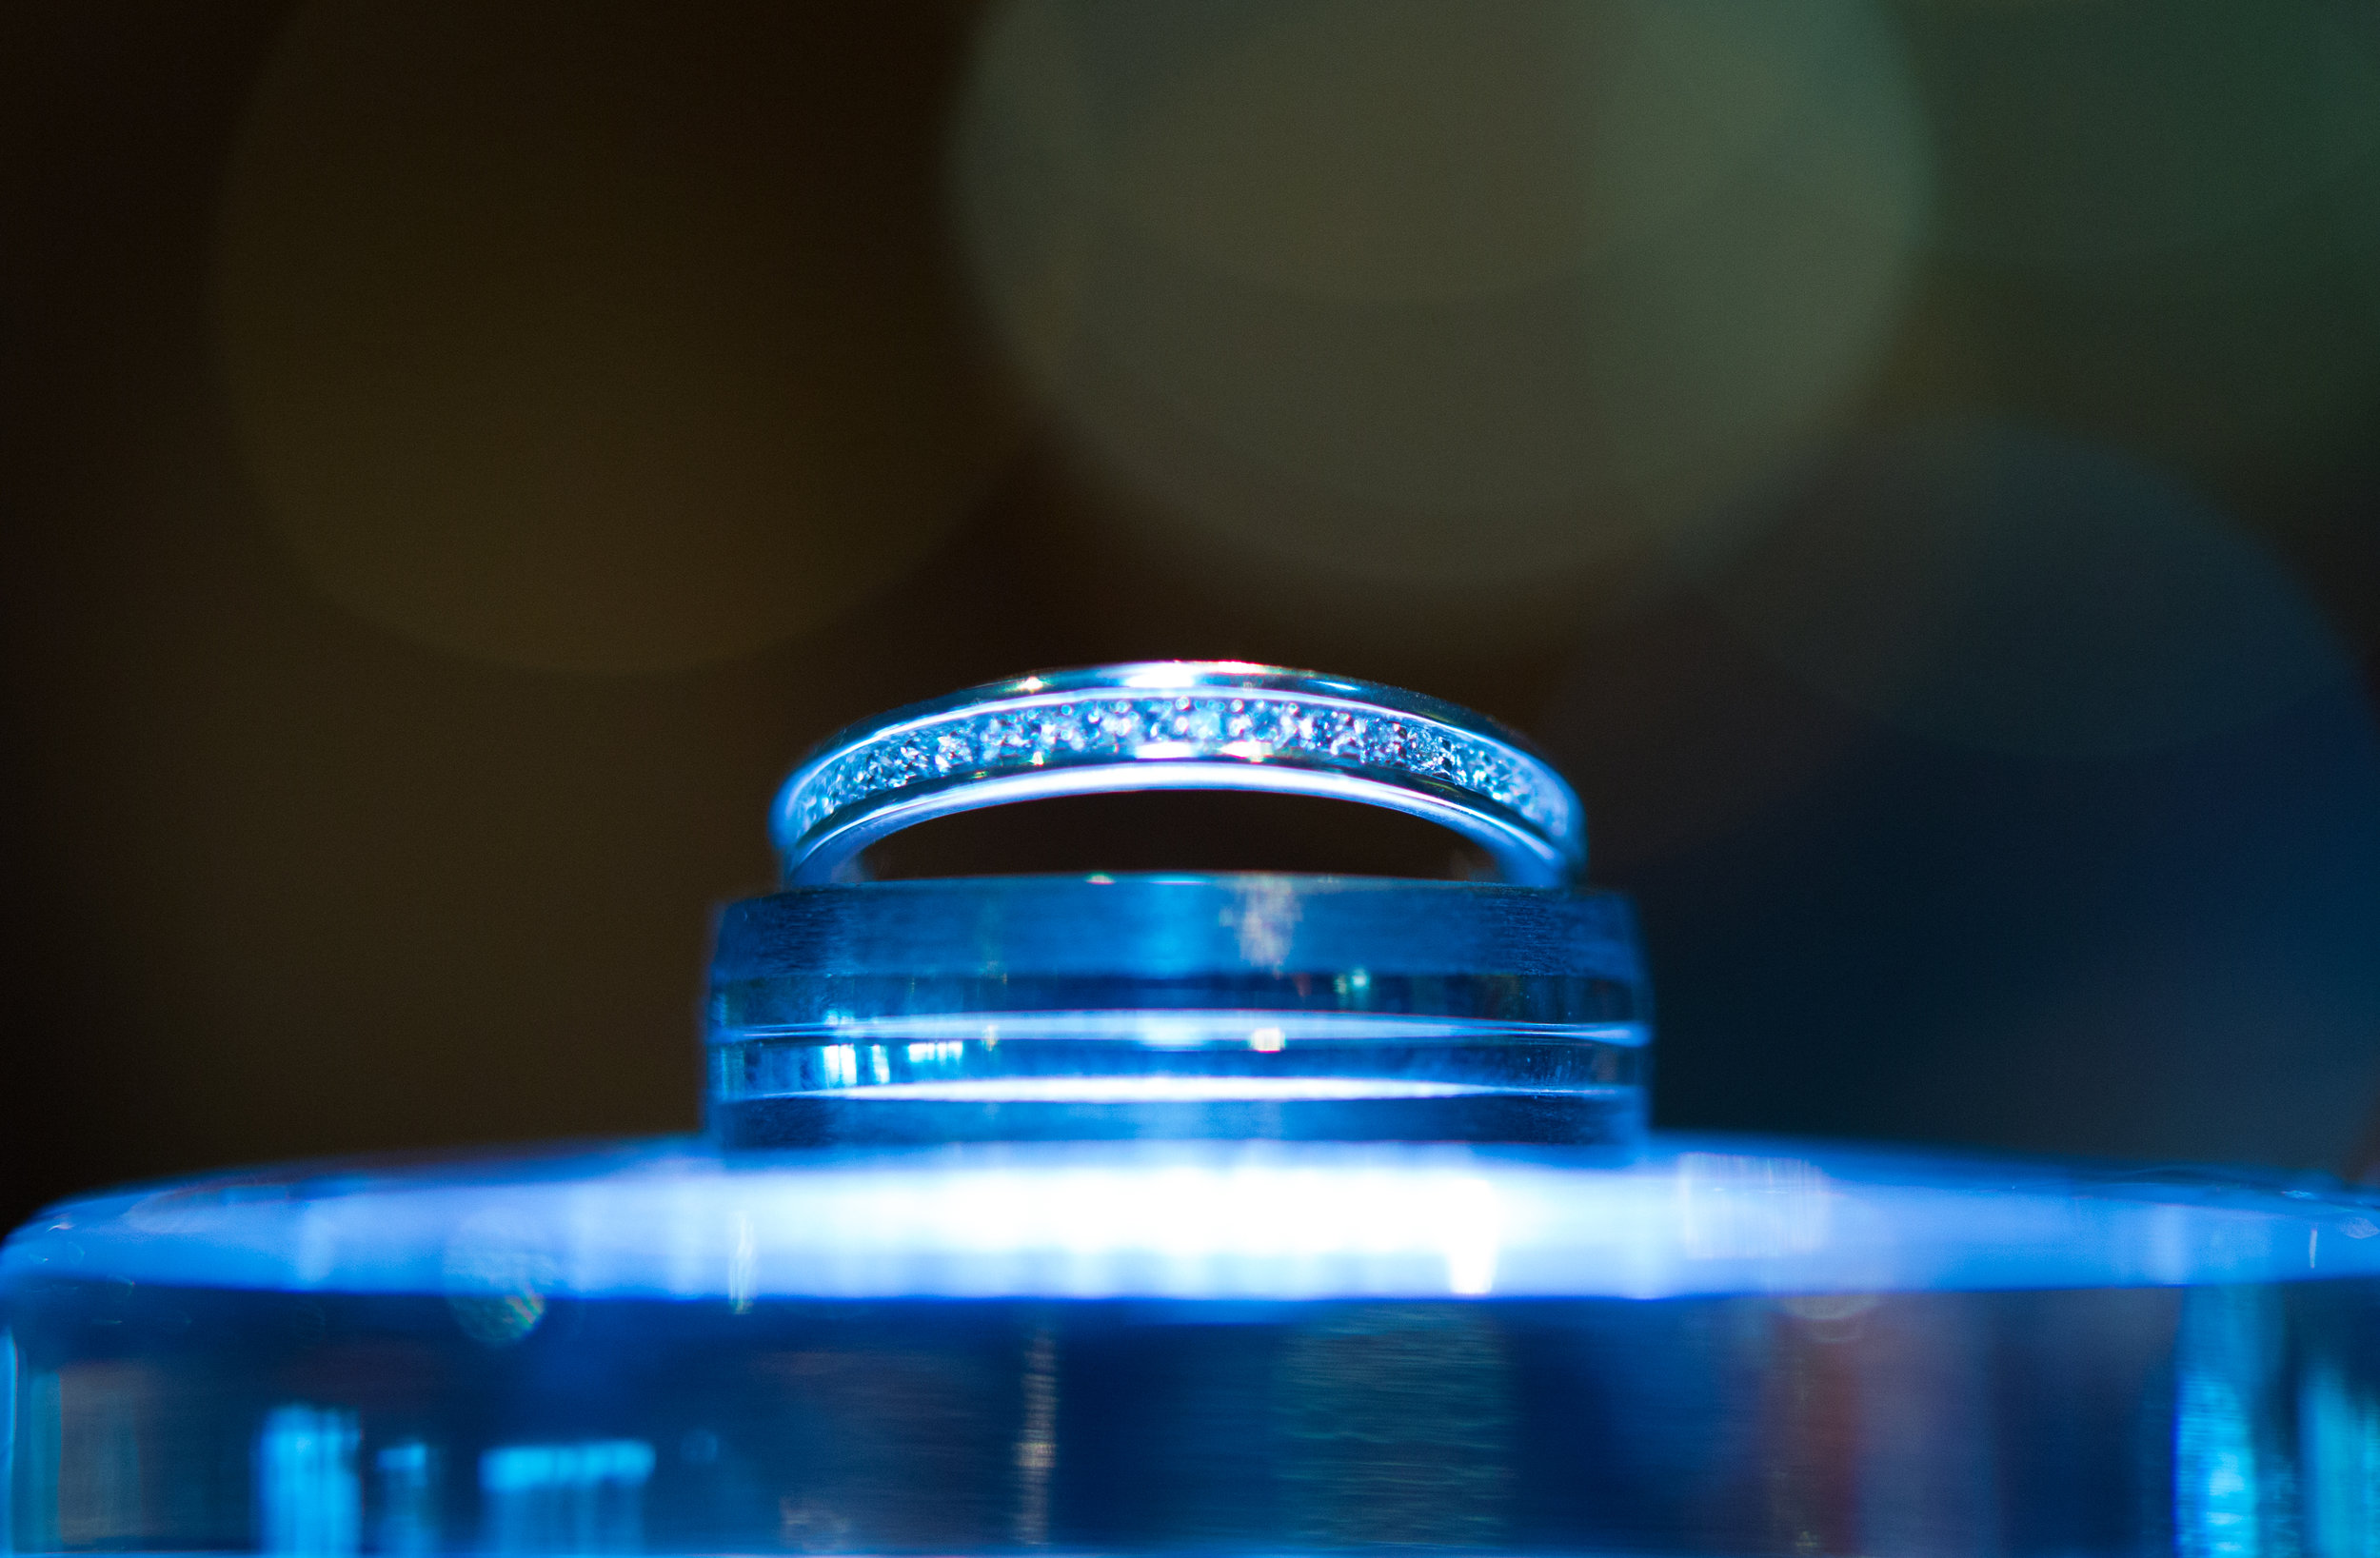 cotswalds-chipping-norton-oxfordshire-london-wedding-photography-ring-shot-02